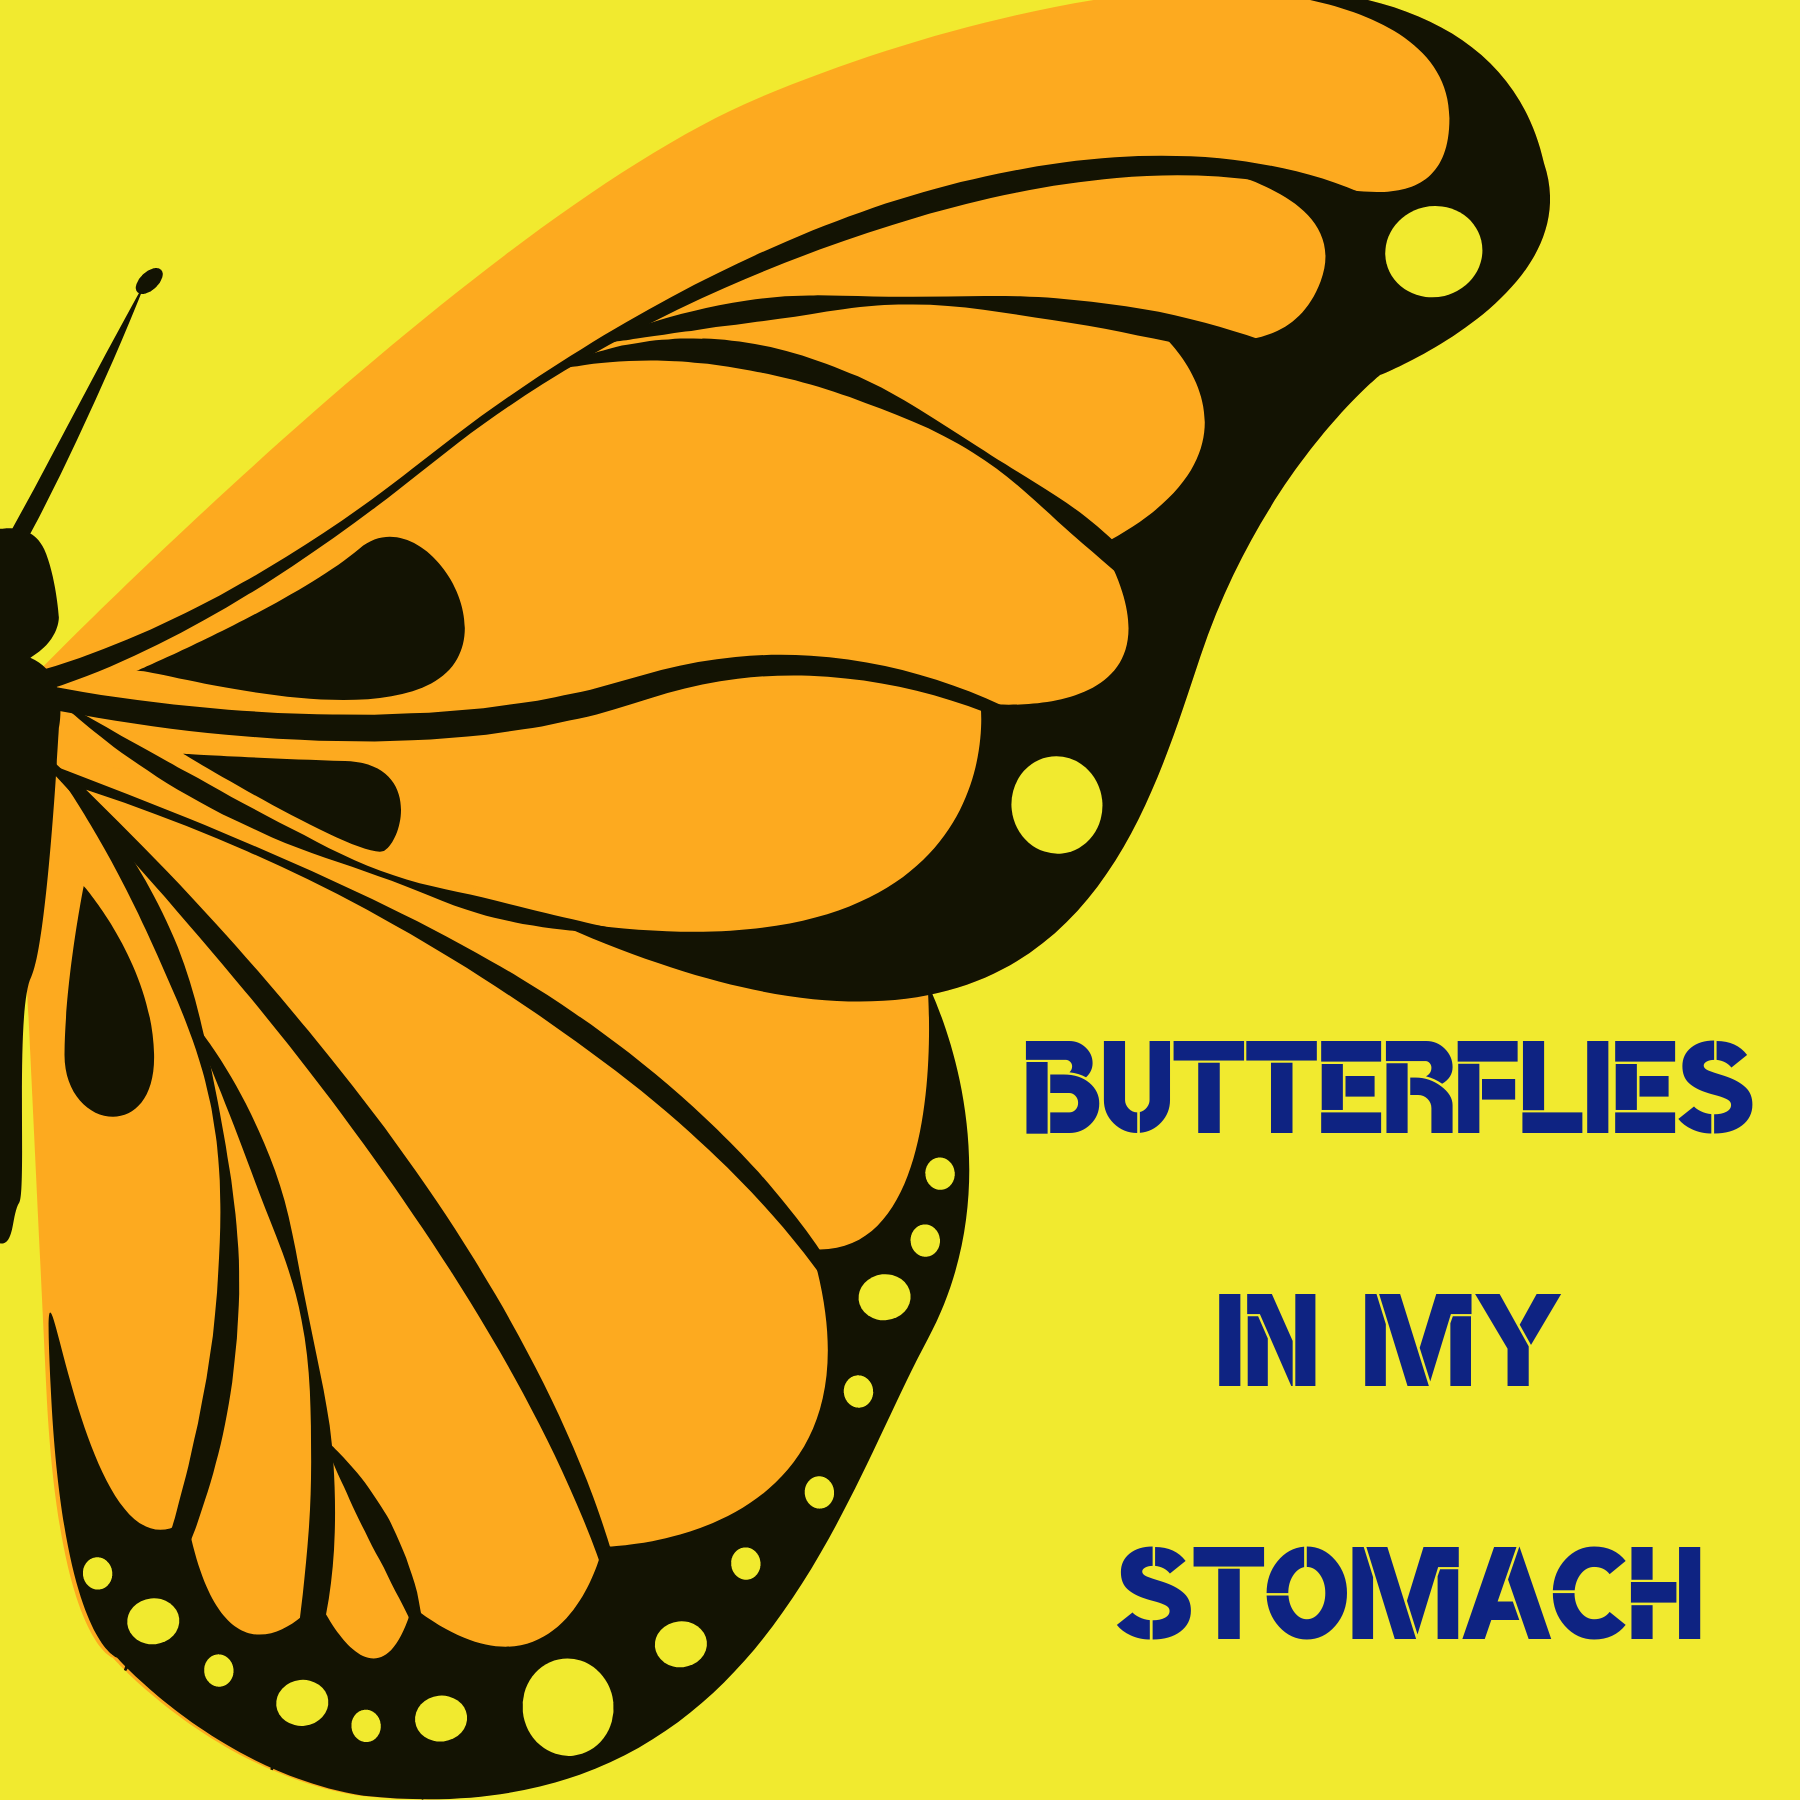 Butterflies in my stomach clipart jpg library stock butterflies in my stomach - Whooshkaa jpg library stock